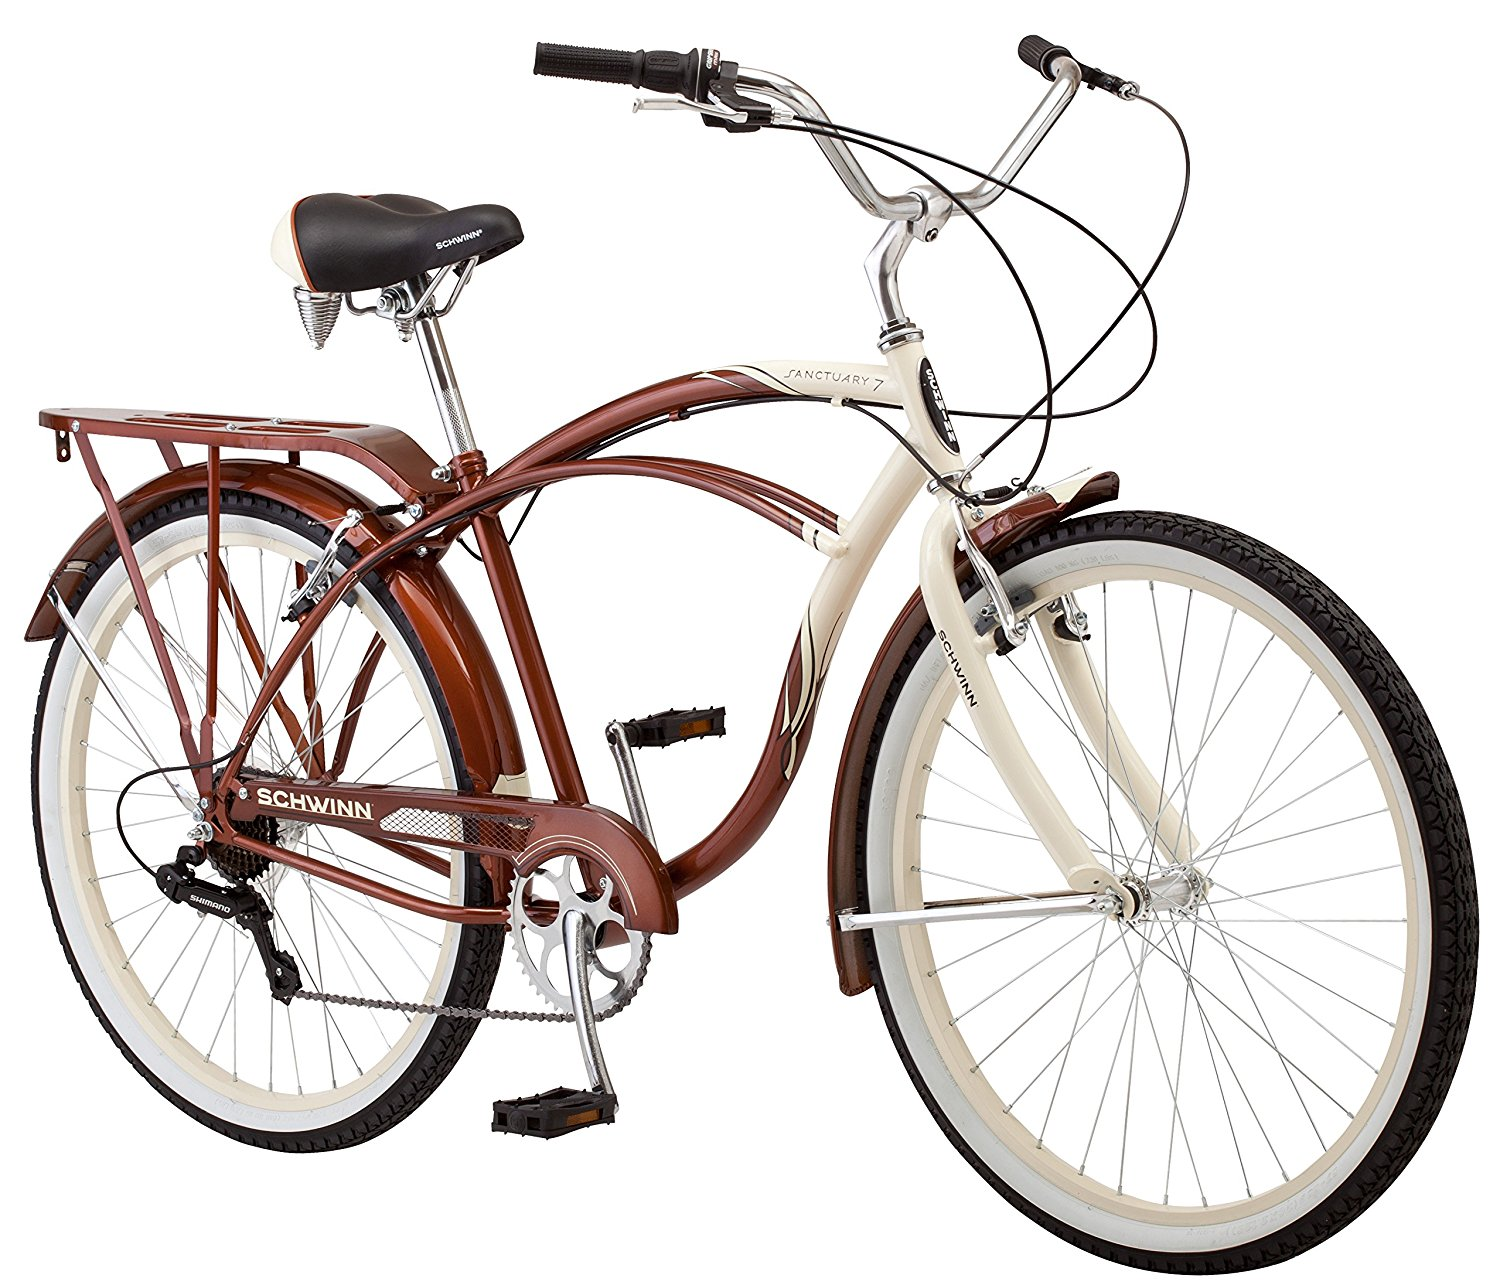 Schwinn Mens Sanctuary 7-Speed Cruiser Bicycle Cream/Copper 26-Inch Wheels